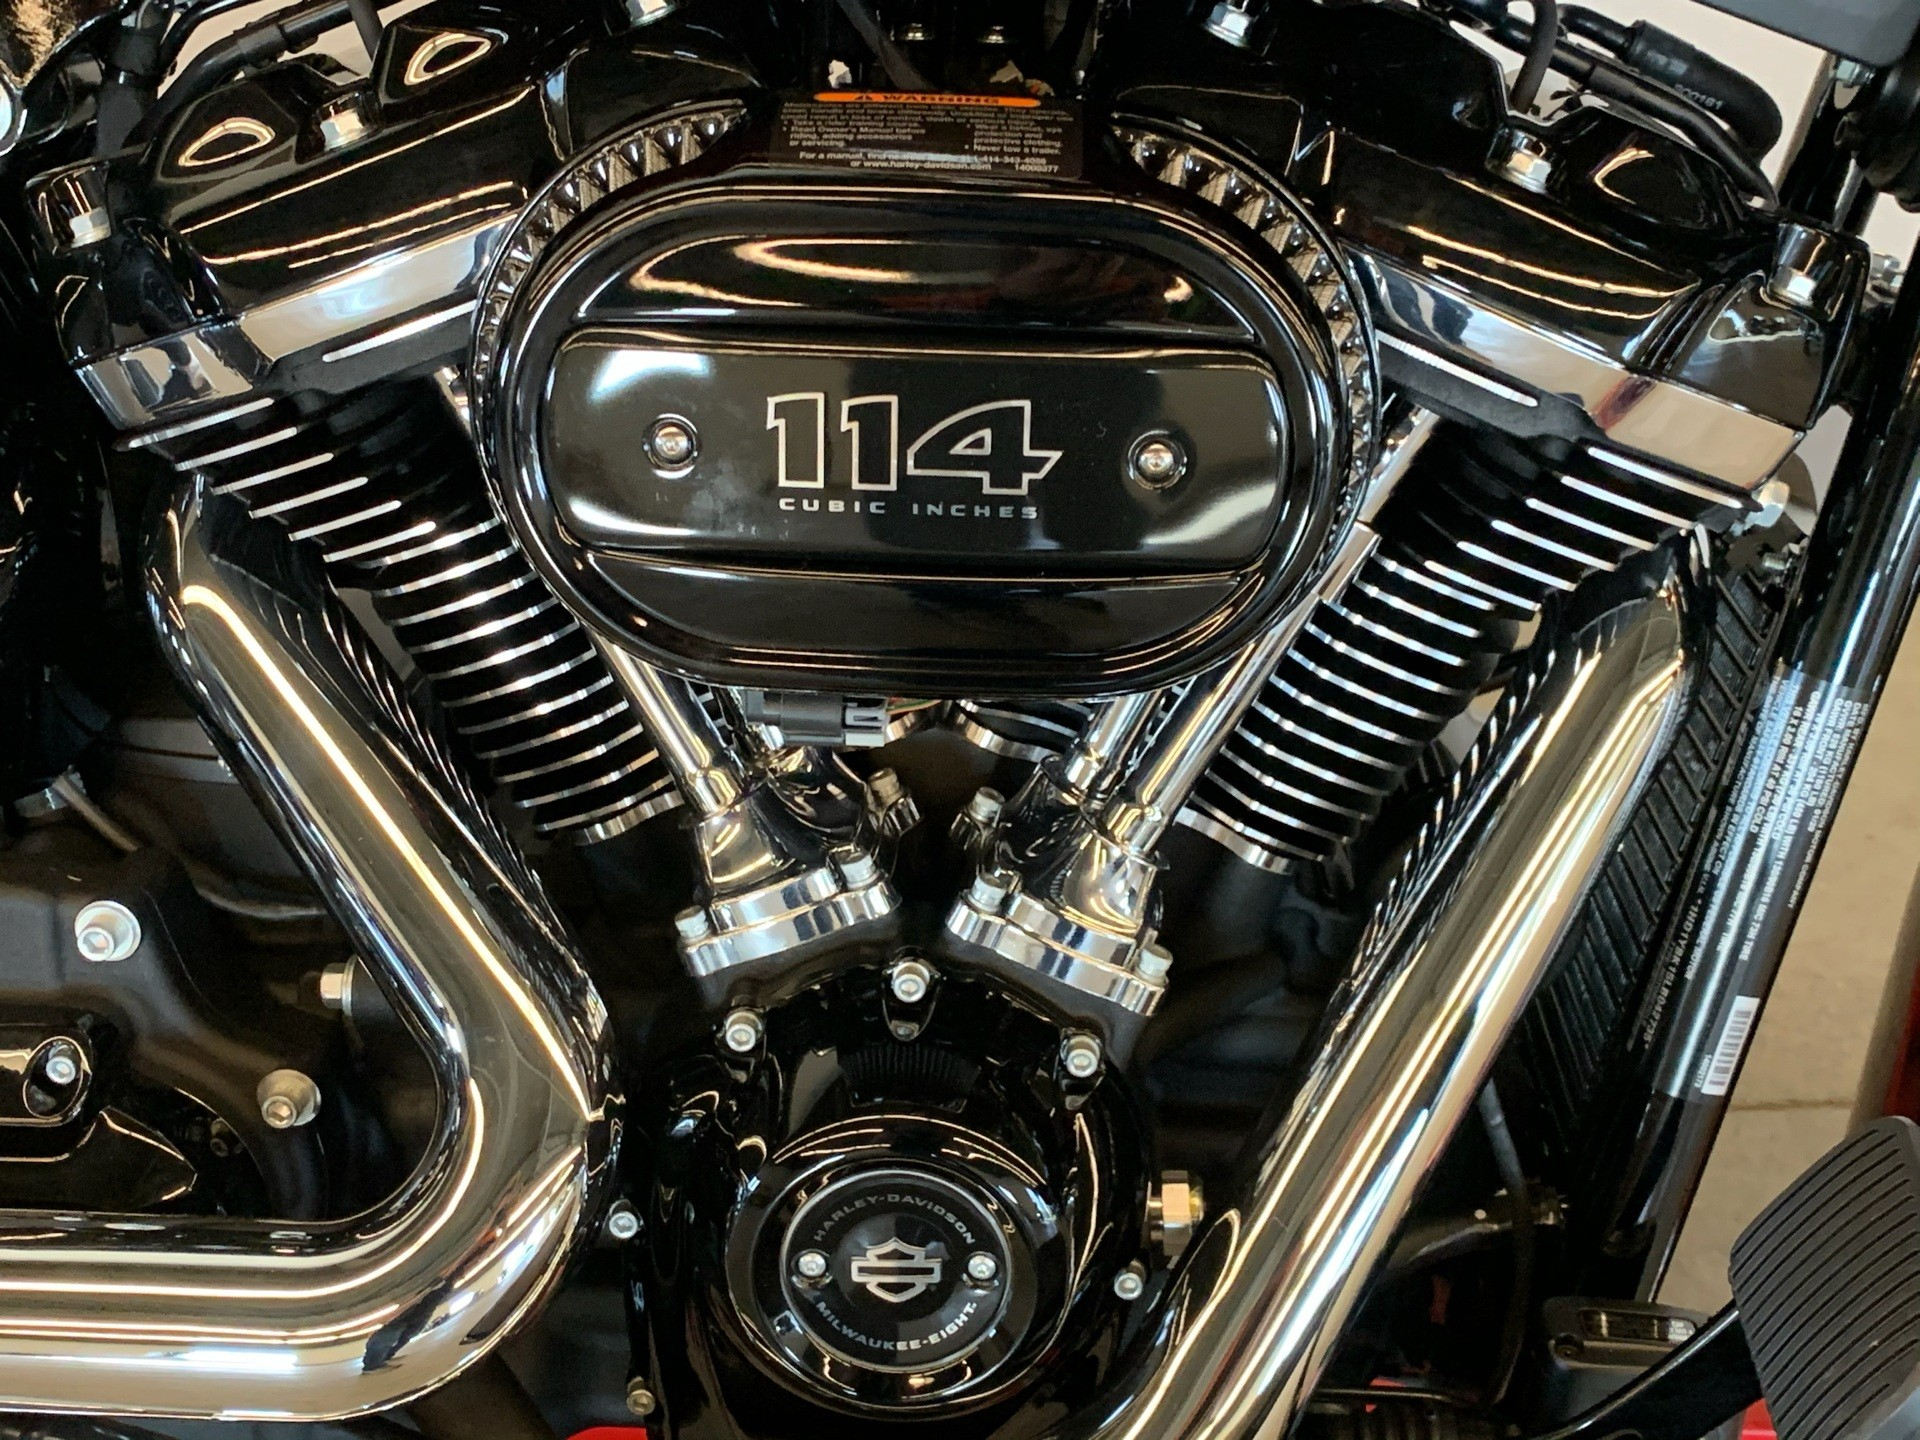 2020 Harley-Davidson Heritage Classic 114 in Flint, Michigan - Photo 8